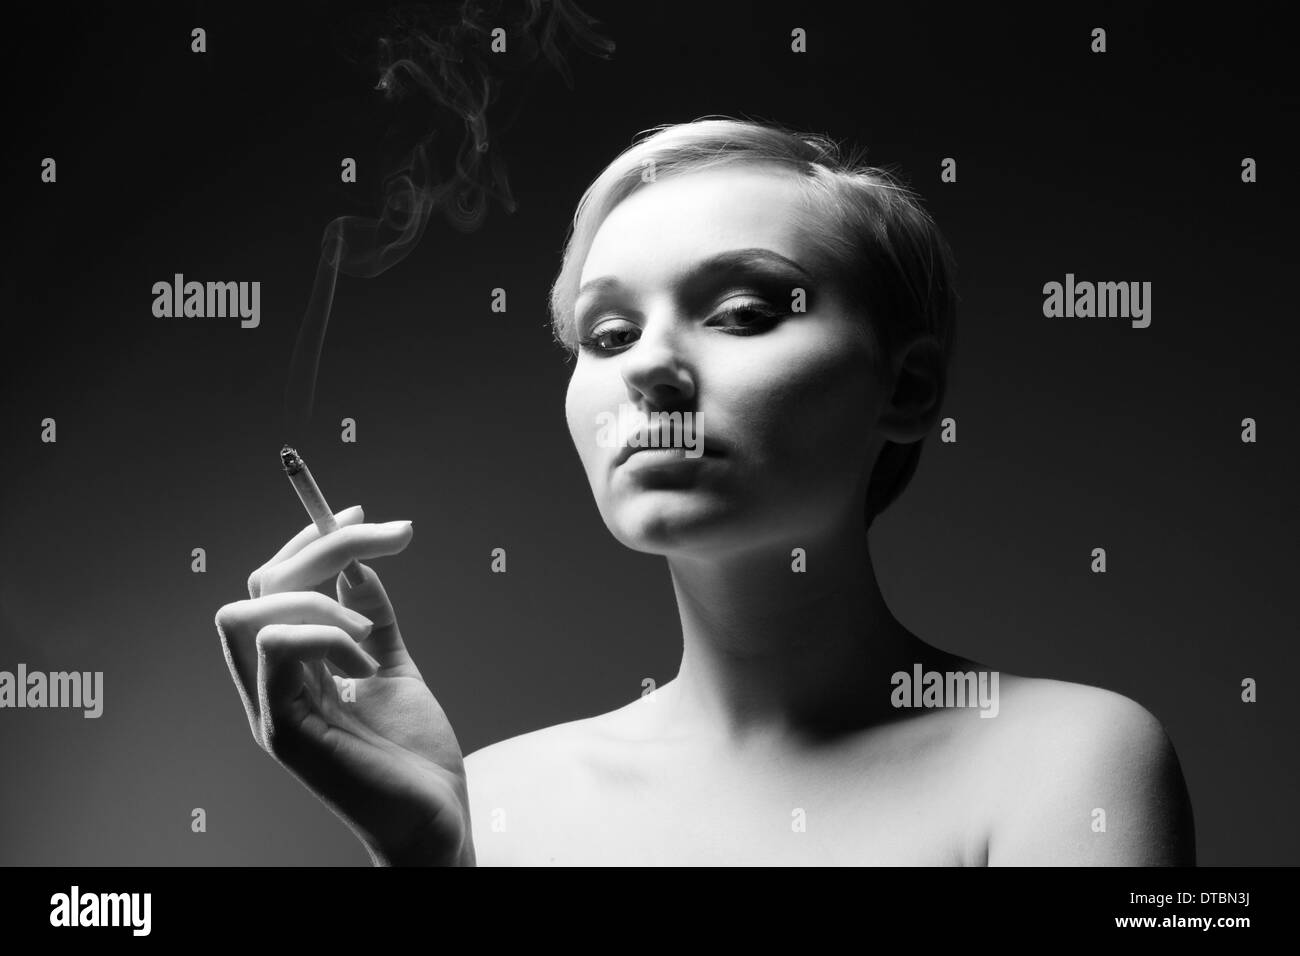 Black and white portrait of a woman with cigarette - Stock Image